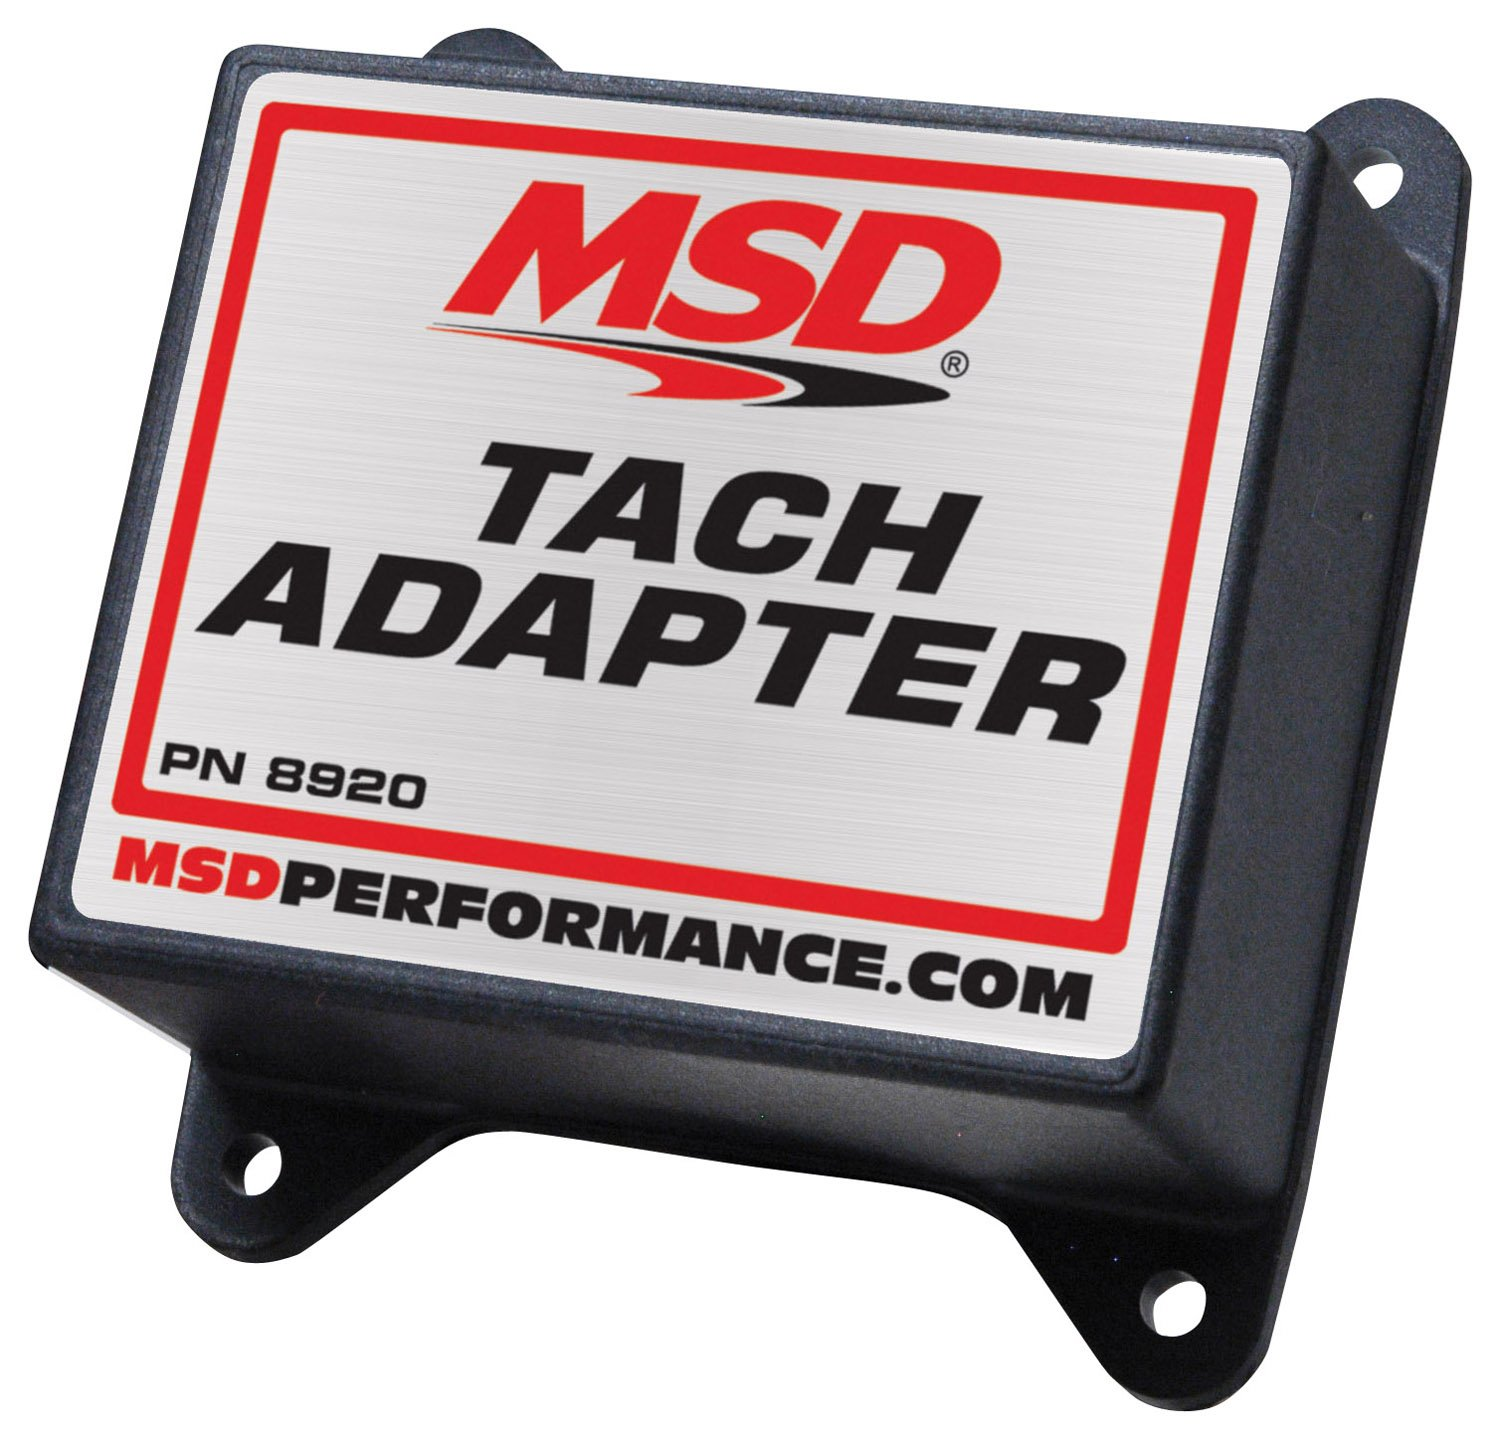 msd 8920 tach fuel adapter8920 tach fuel adapter image